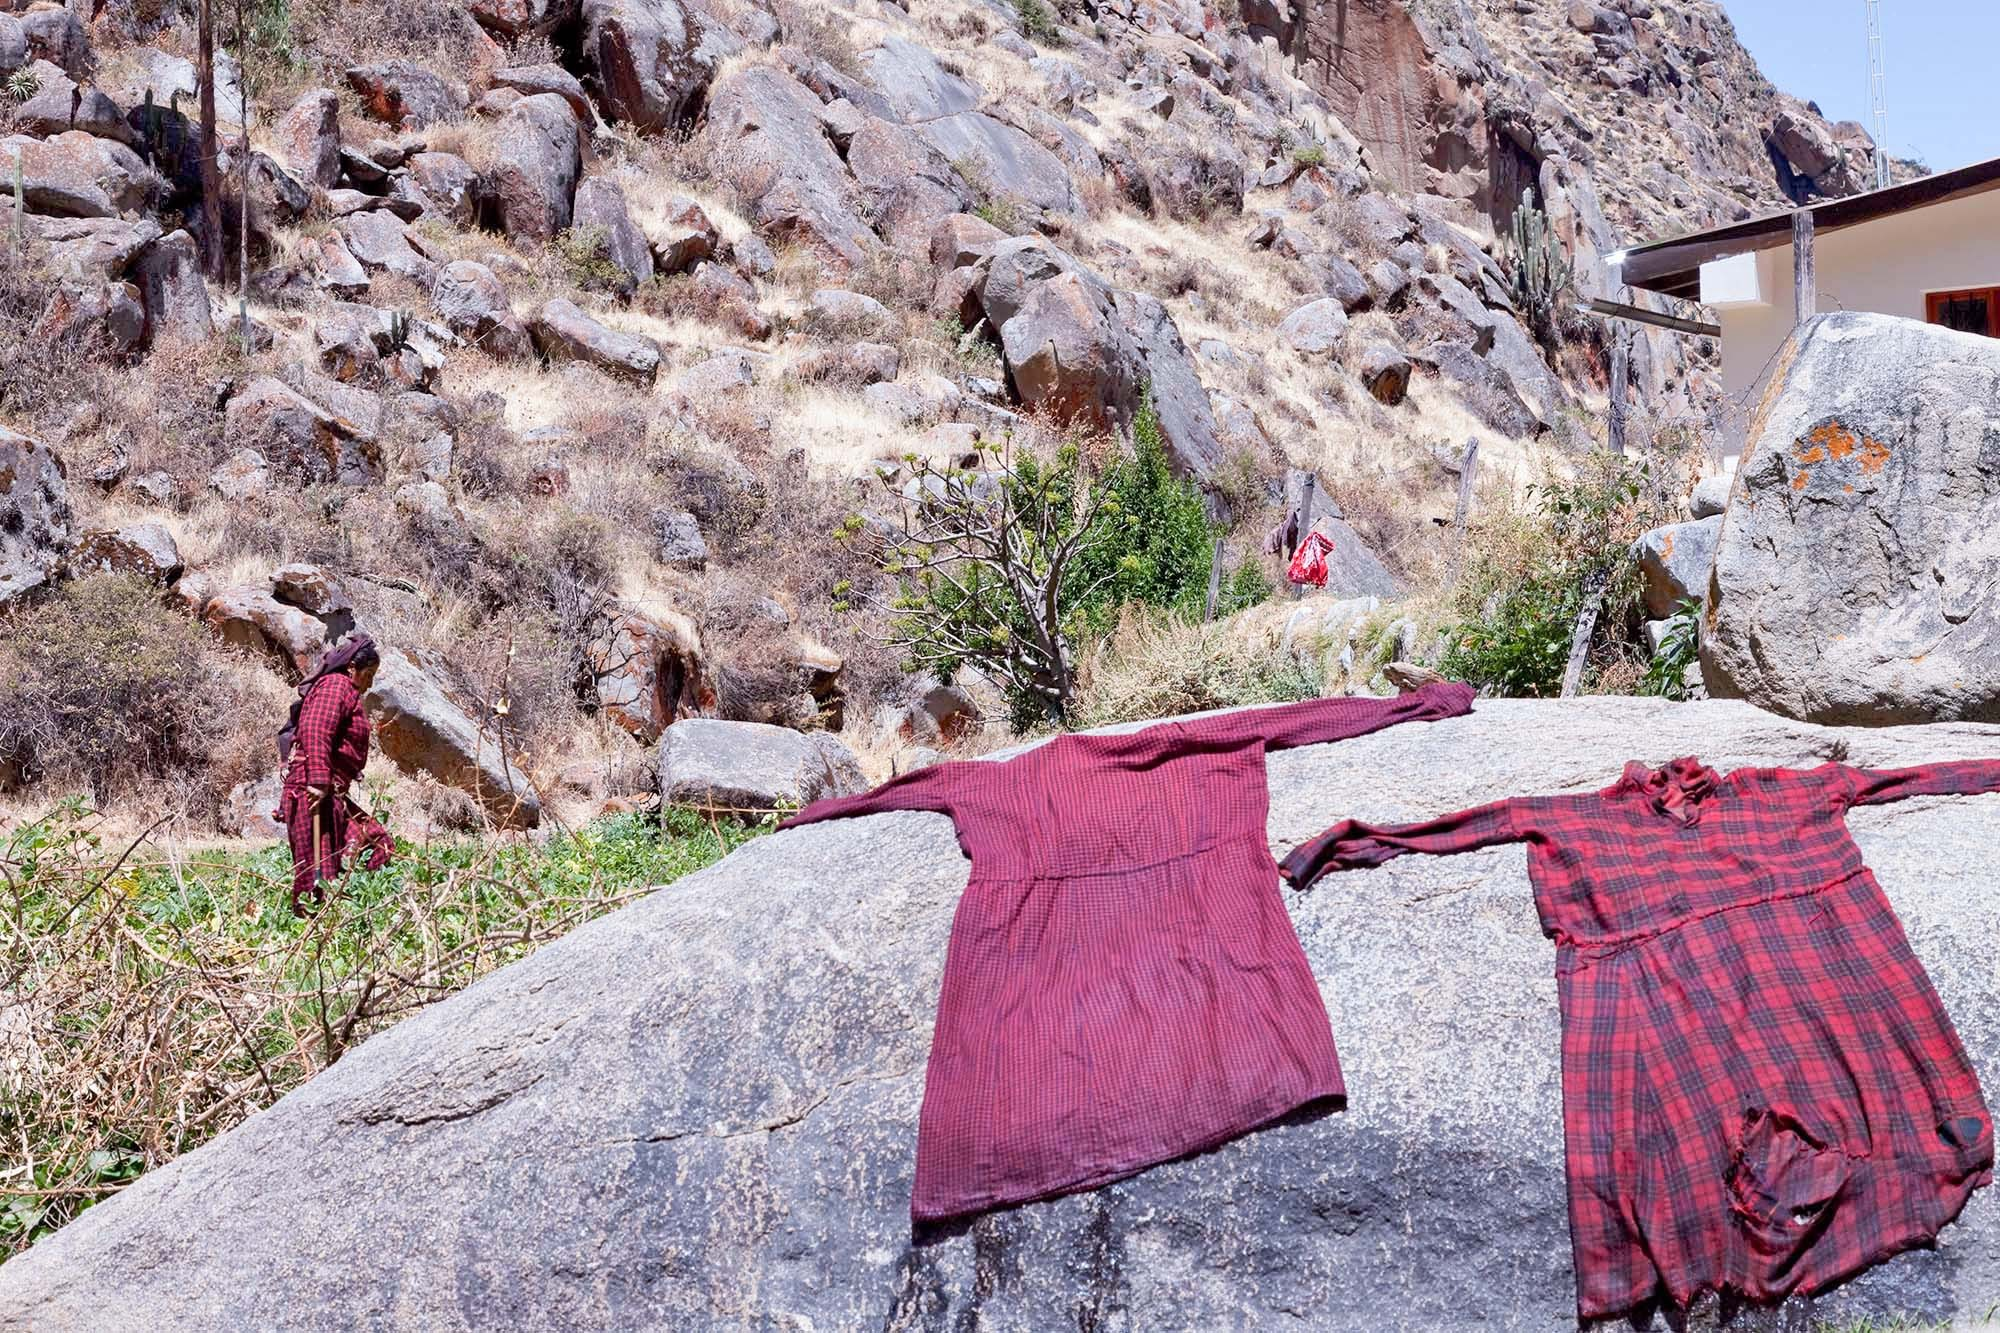 Clothes drying during the potato harvest.